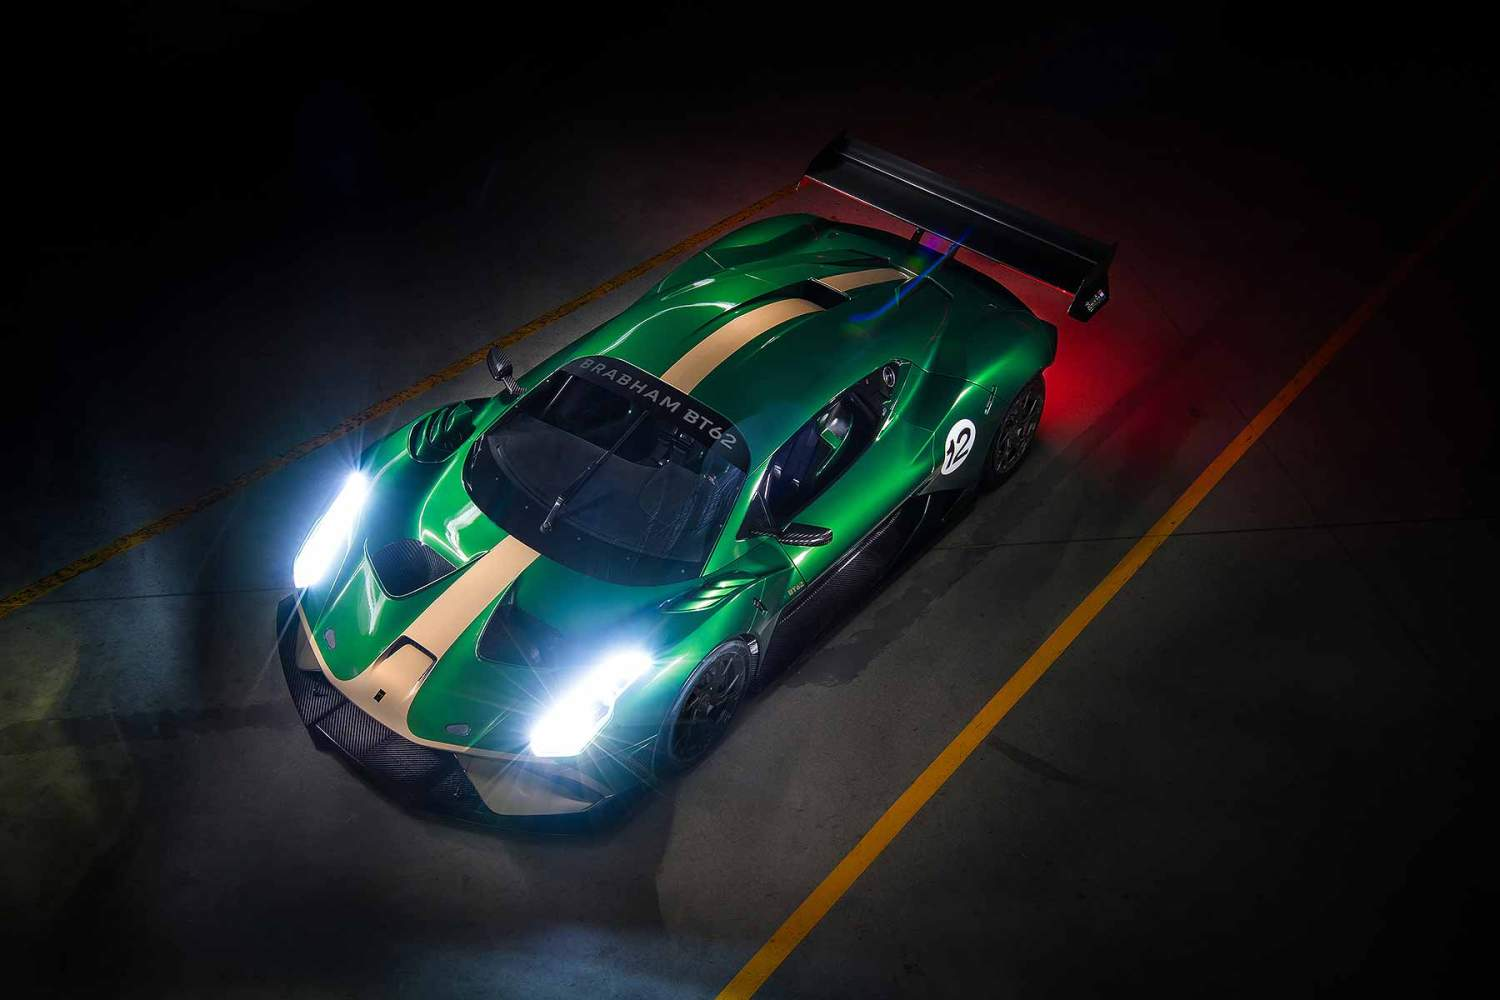 New Brabham BT62 supercar